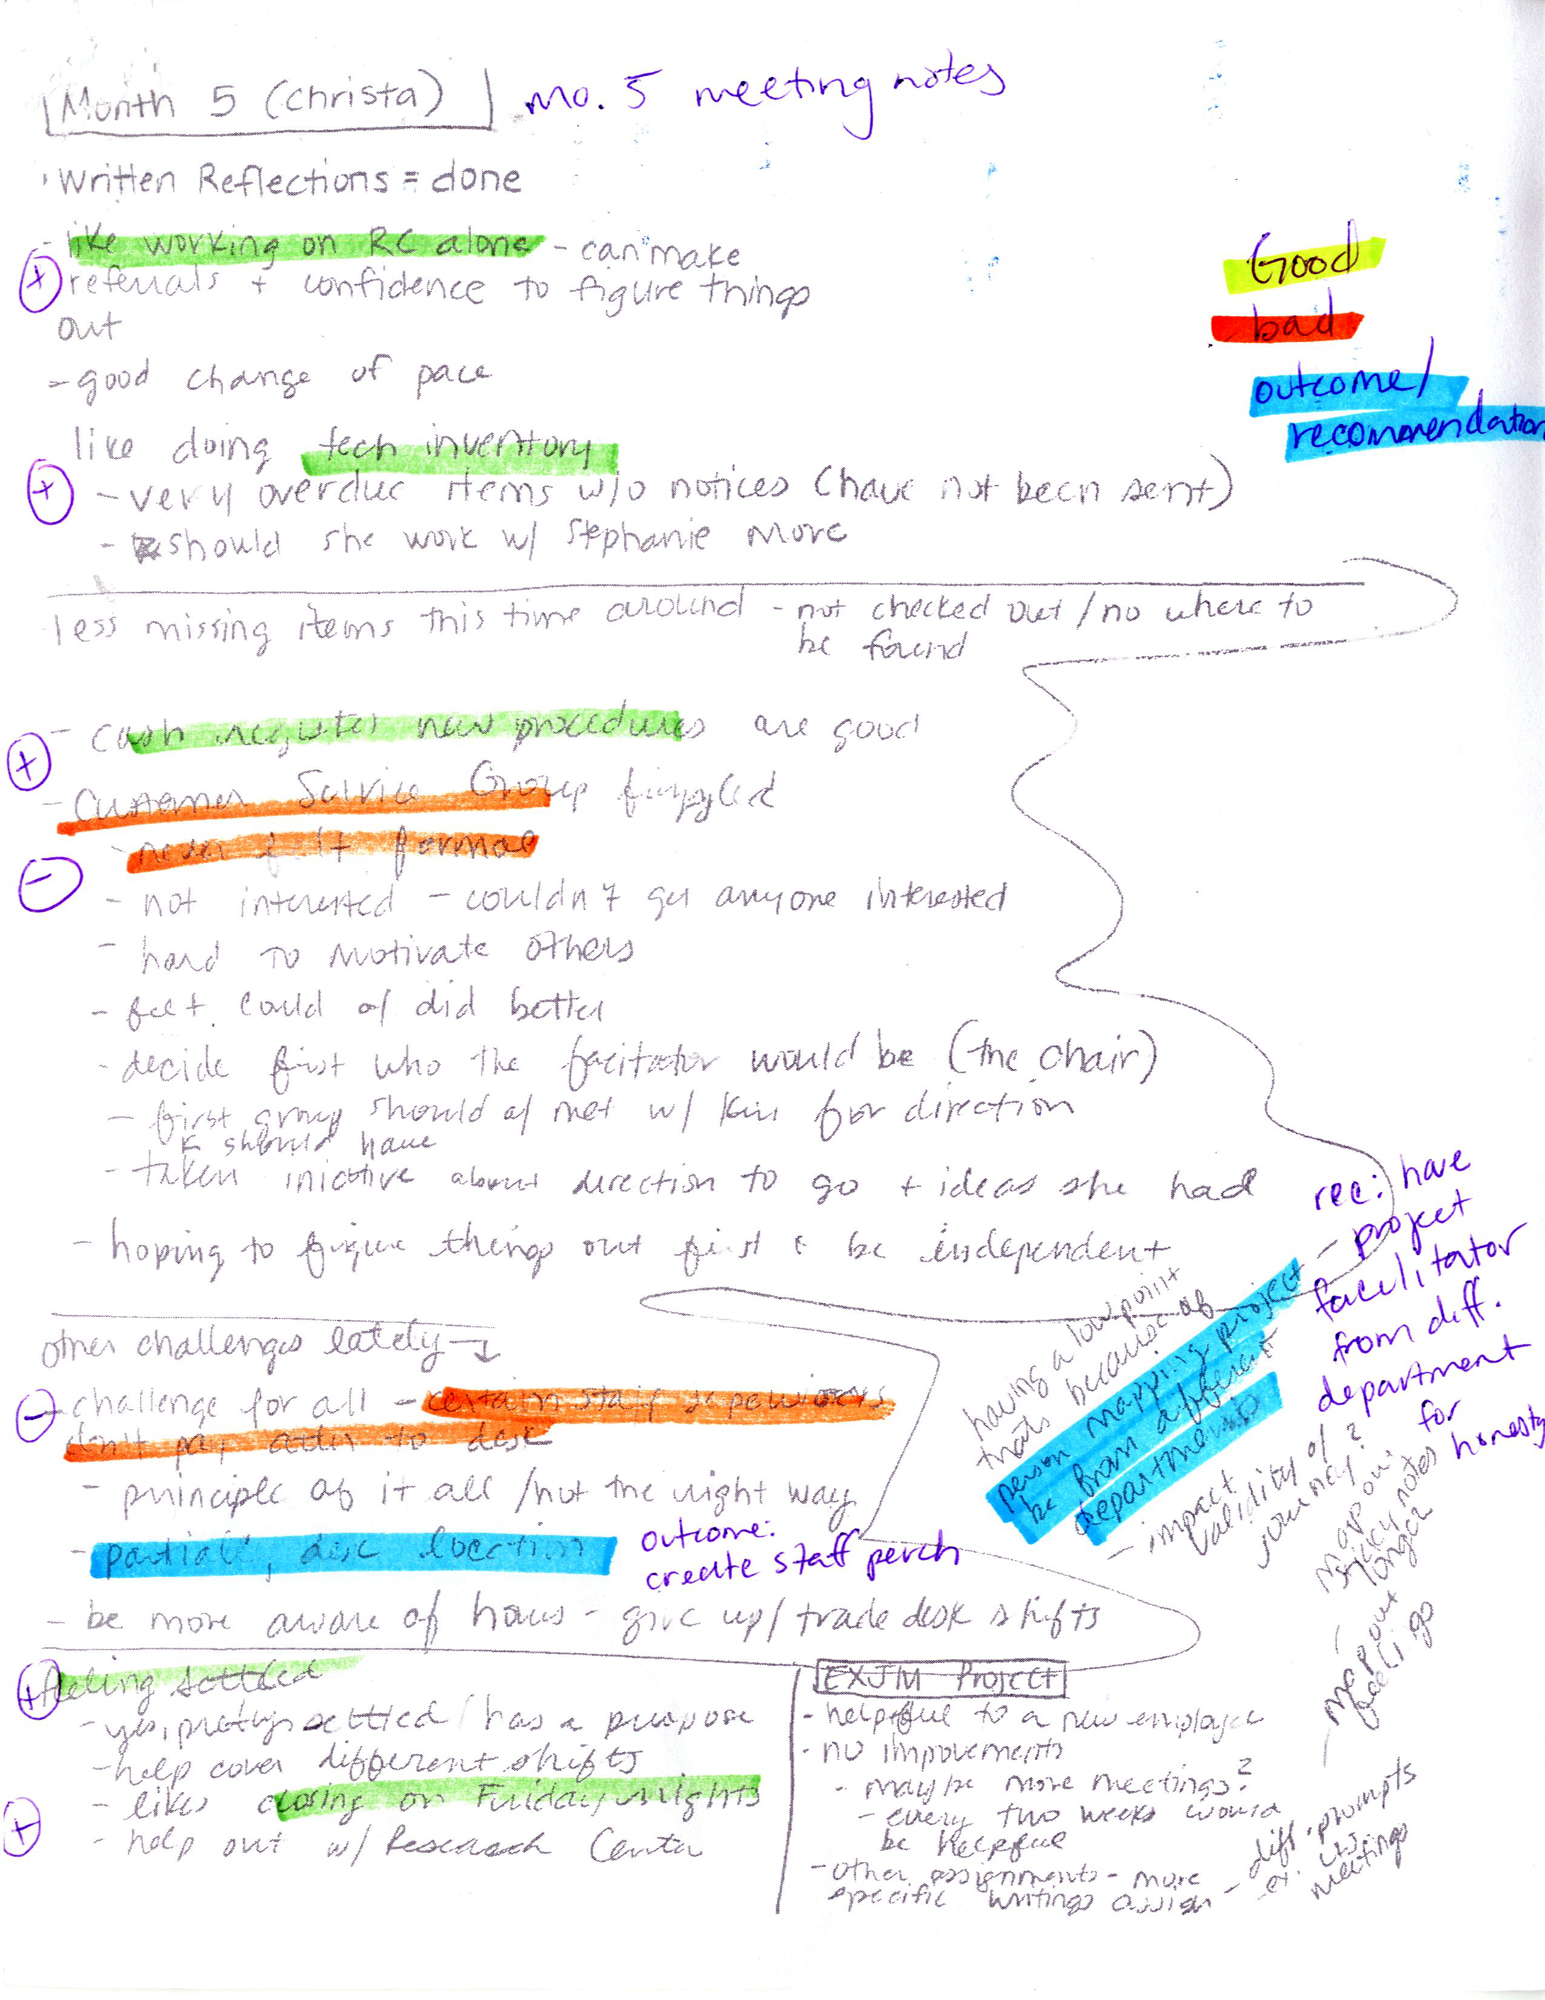 Figure 3. Examples of our meeting notes as project facilitators after highlighting and review (used with permission).